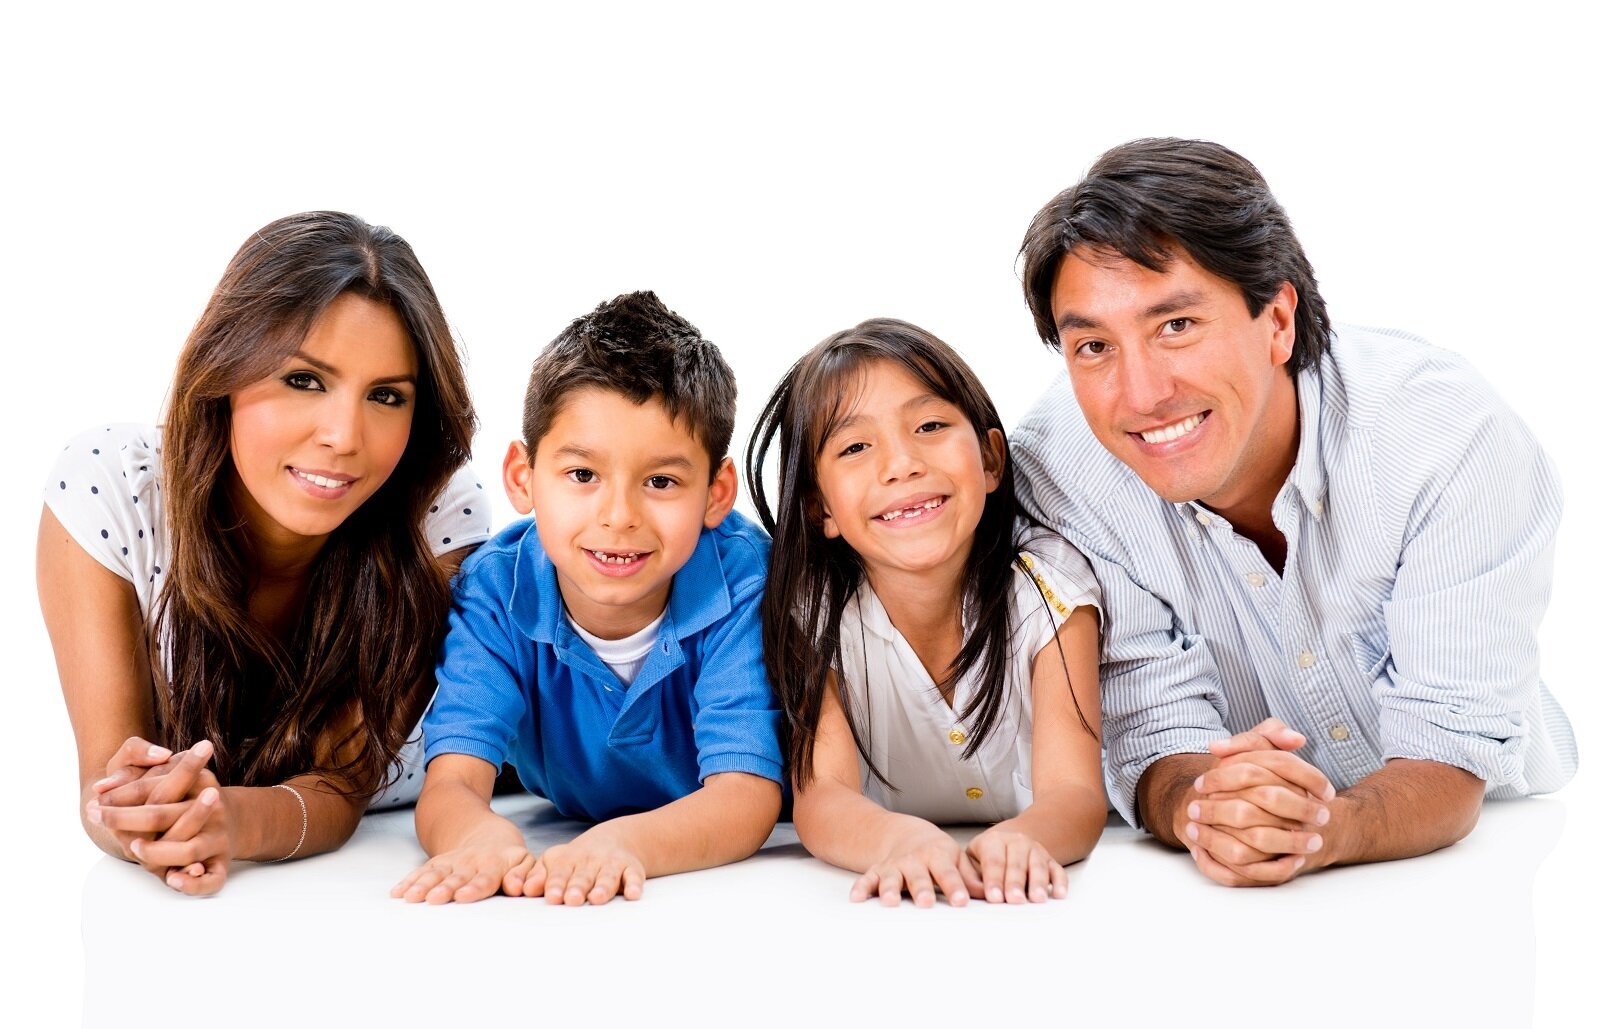 Get a real time quote to save your family money!